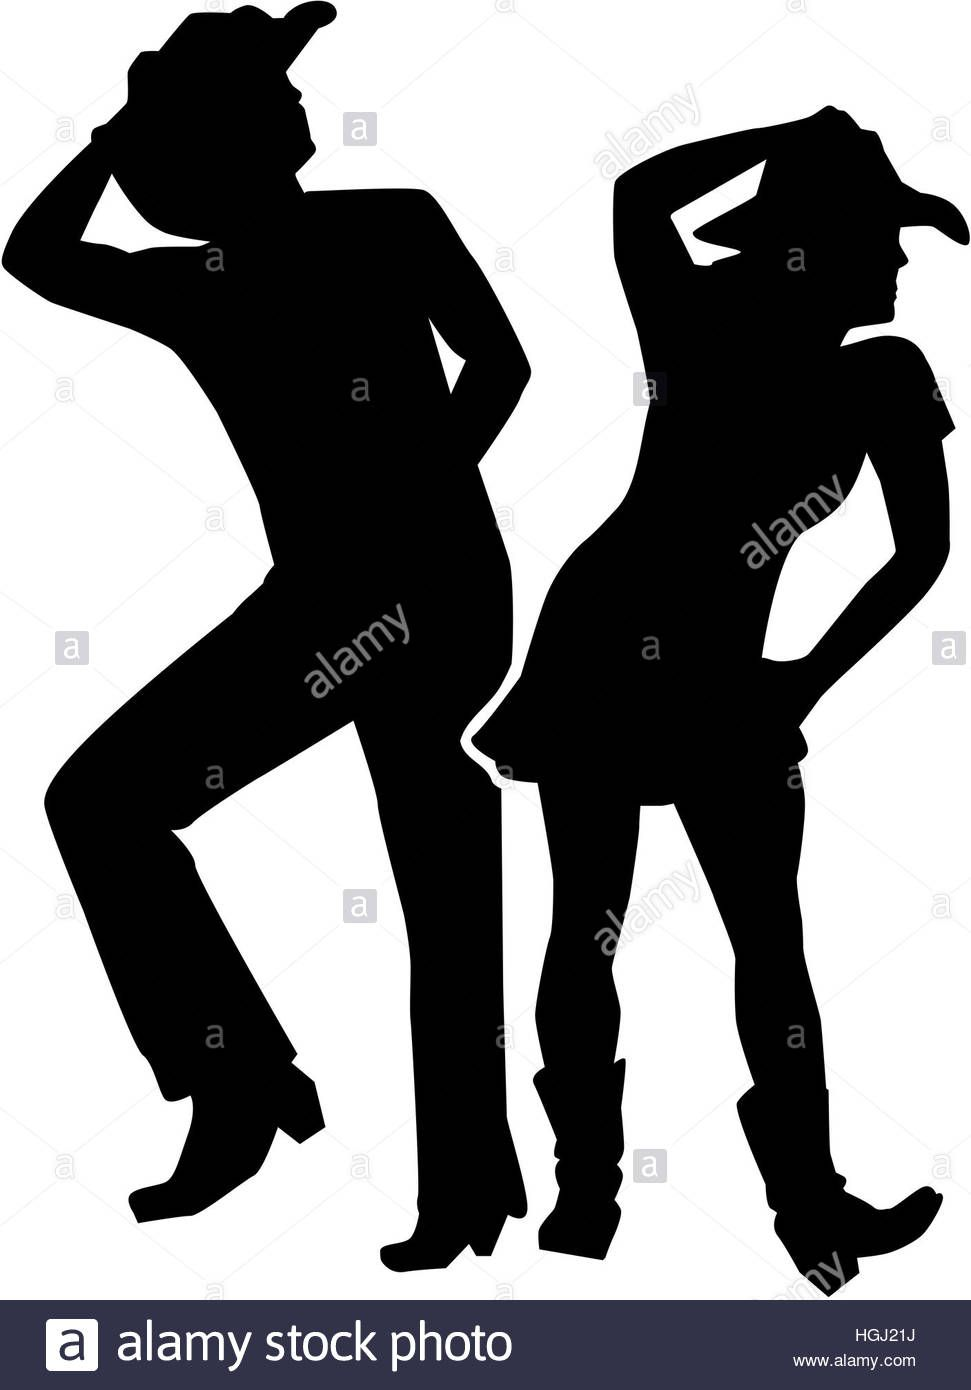 Download This Stock Image Line Dancing Silhouette Man And Woman Hgj21j From Alamy 39 S Library Of Millions Of Silhouette Man Line Dancing Dance Silhouette